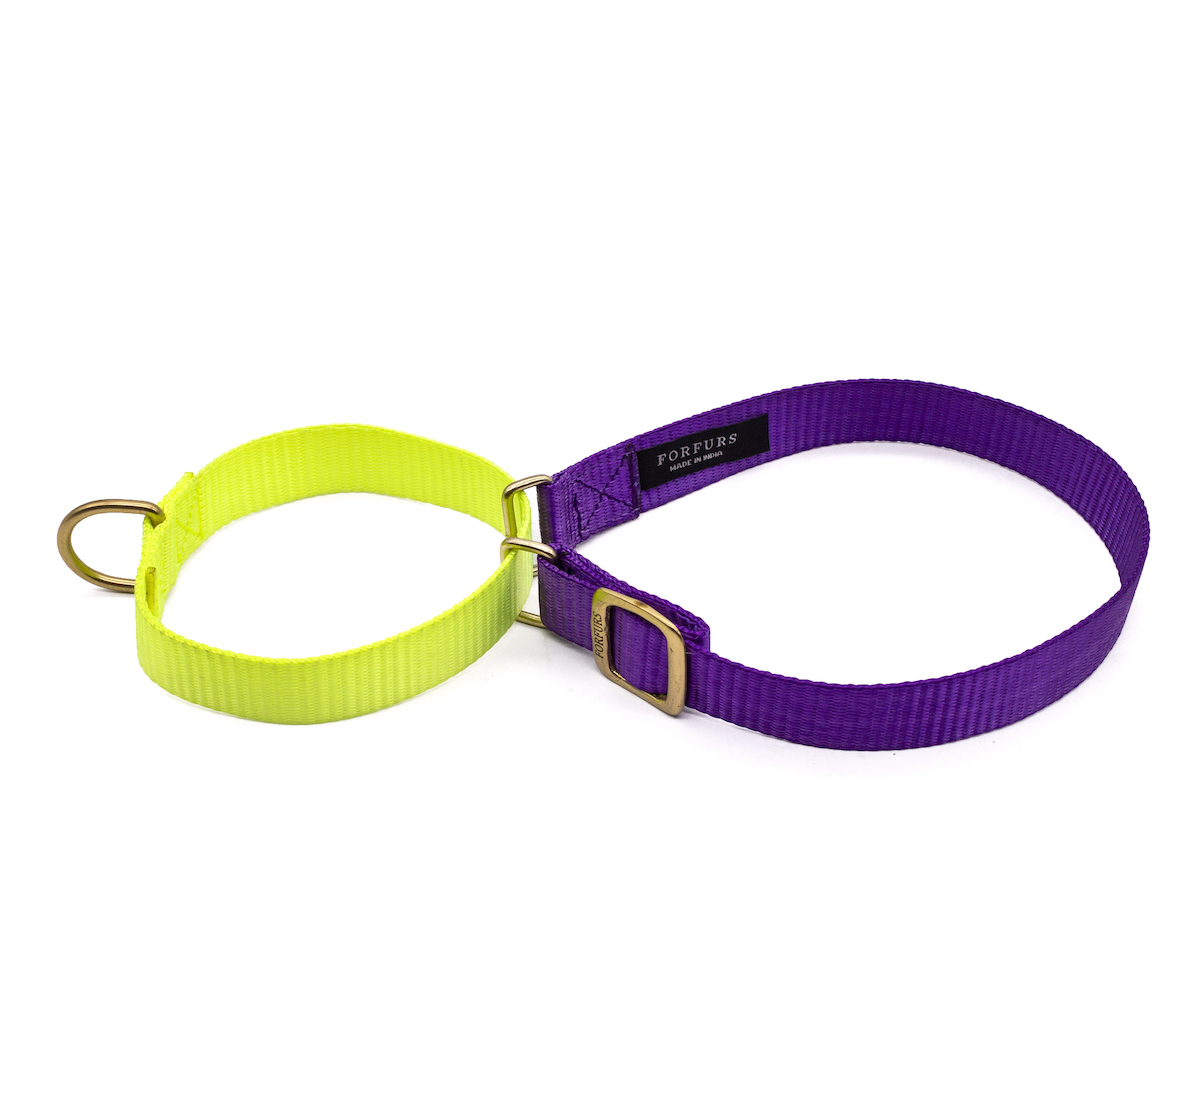 Forfurs Duo Martingale Collar Ultra Violet & Lime Green - Large